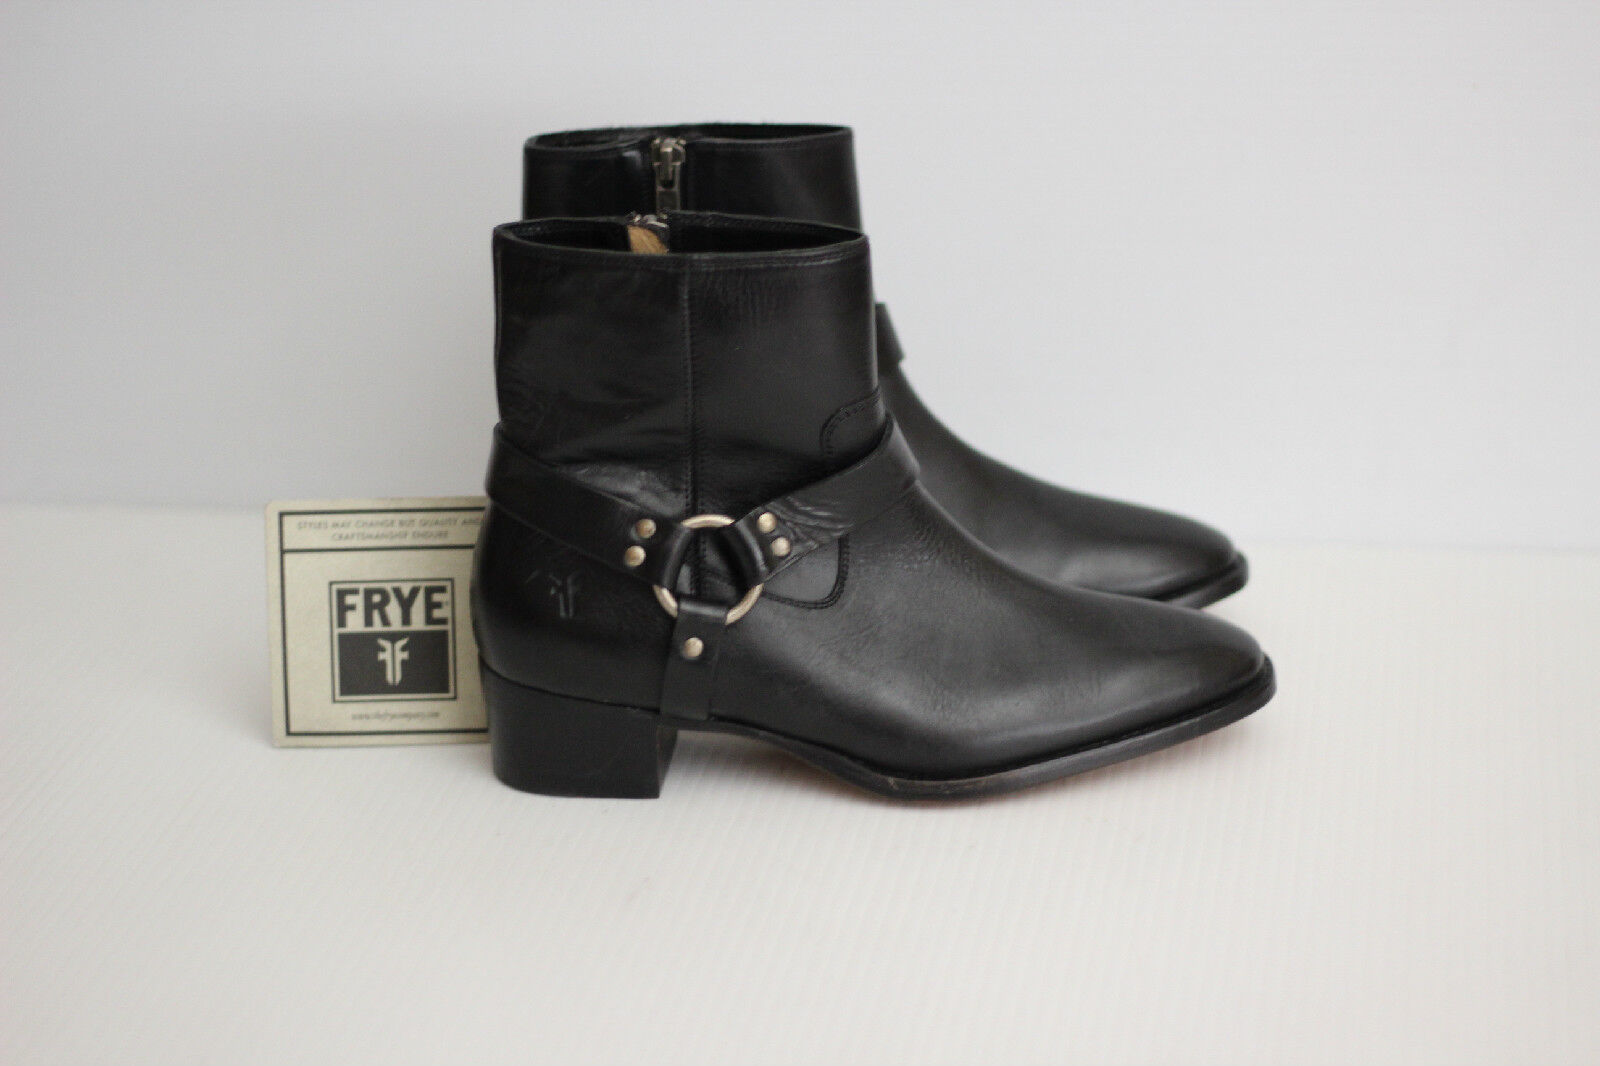 NEW Frye 'Dara' Harness Short Zip Up Bootie Boots - Black Leather - 6.5 B  (S35)